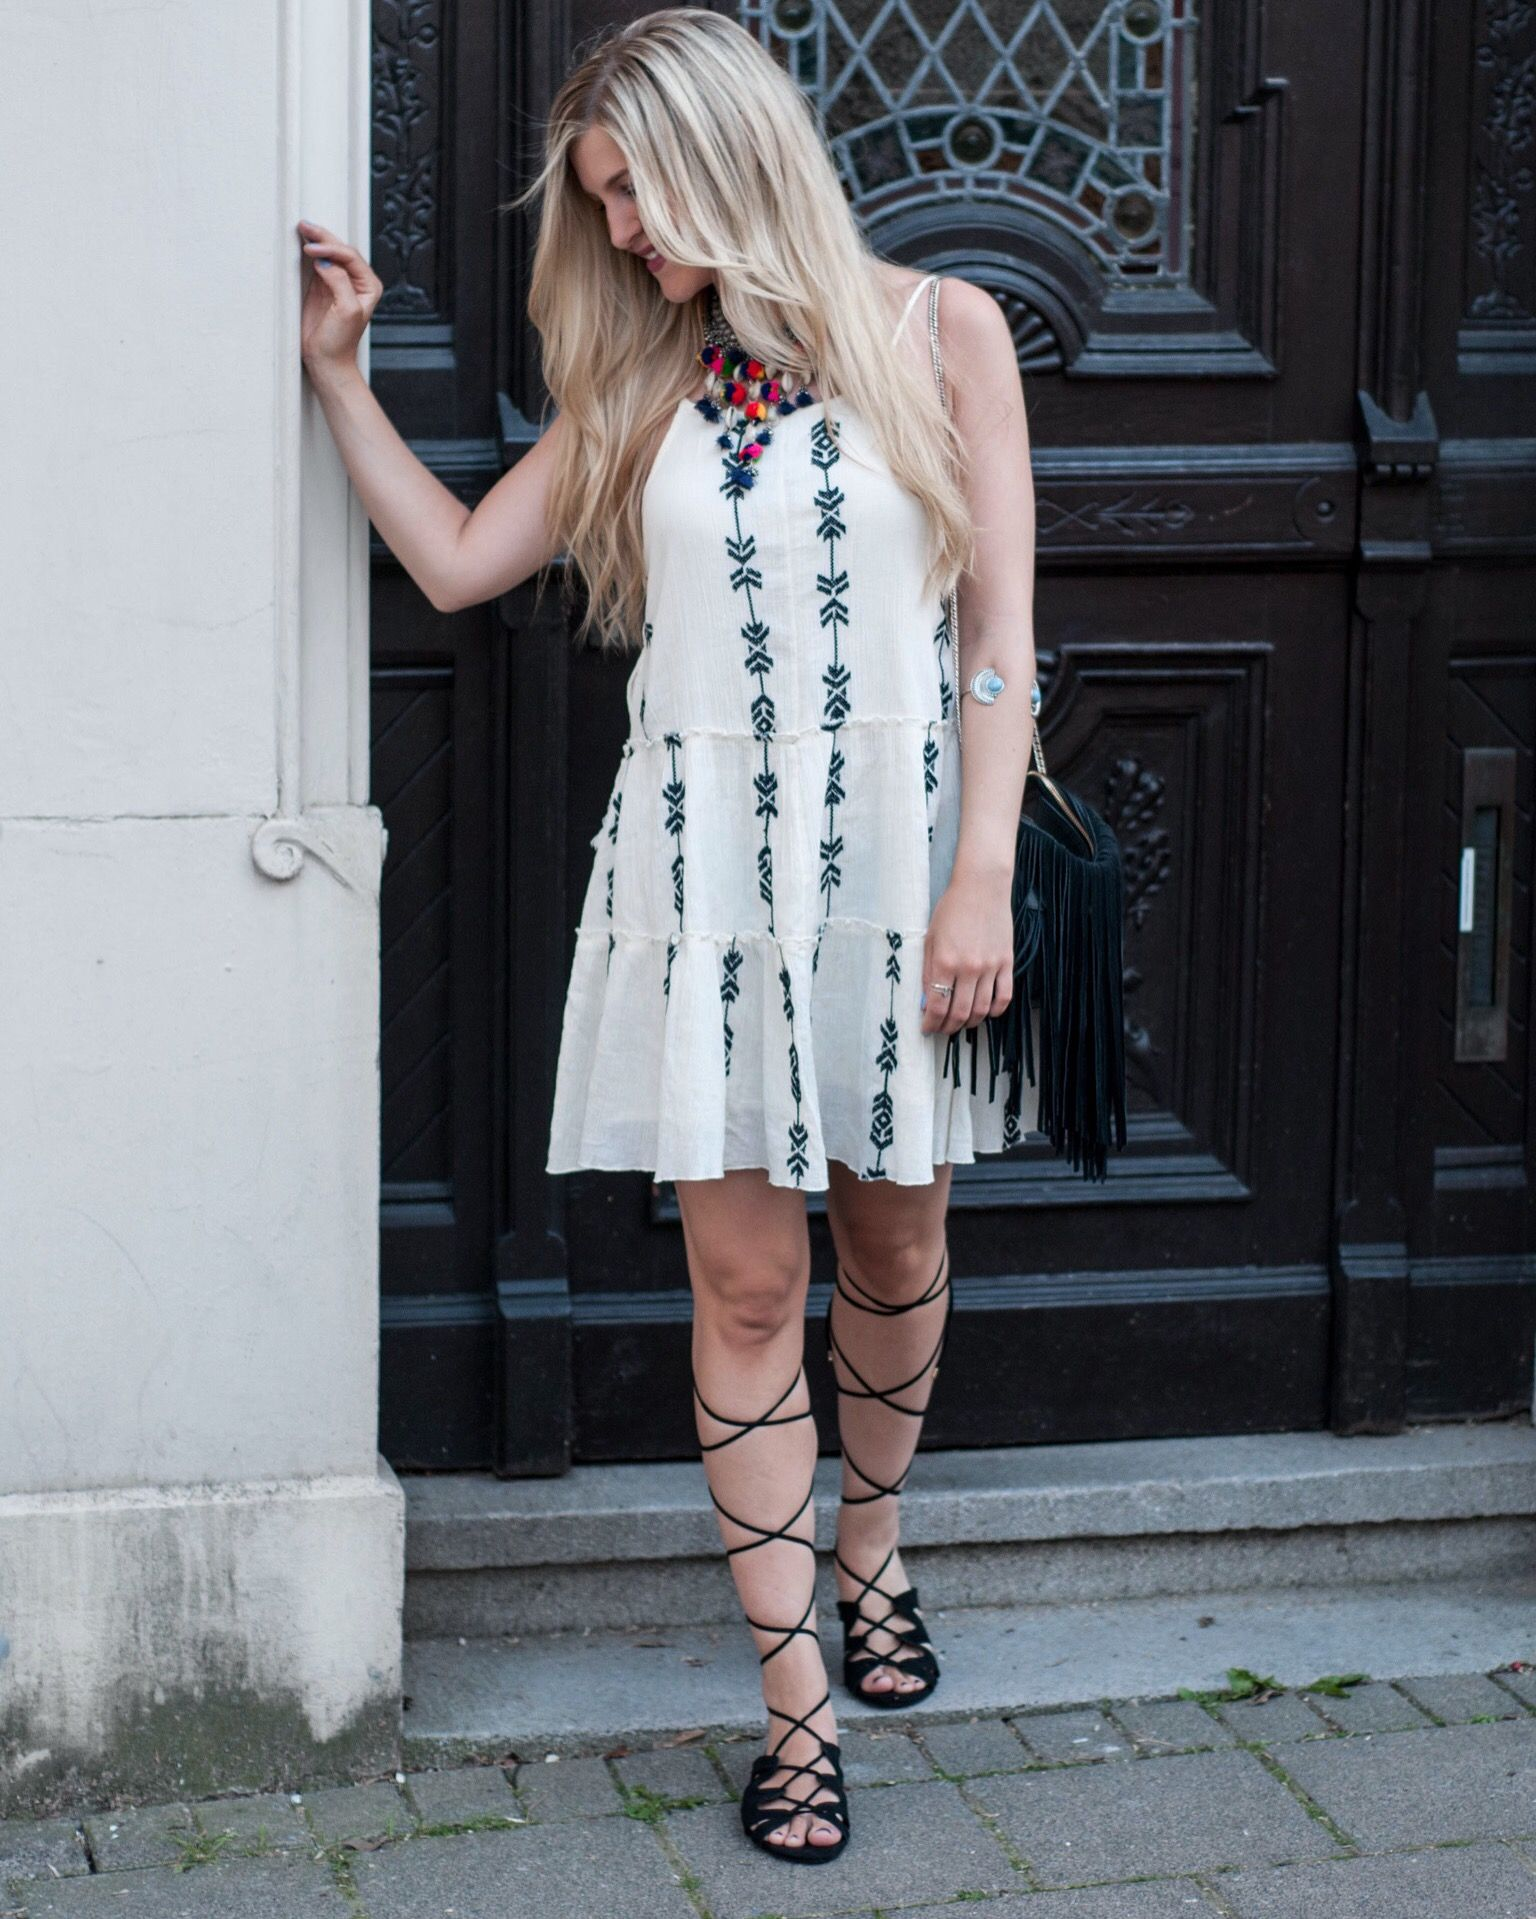 Boho vibes in the city with this ethno dress, lace-up sandals and tassel necklace.